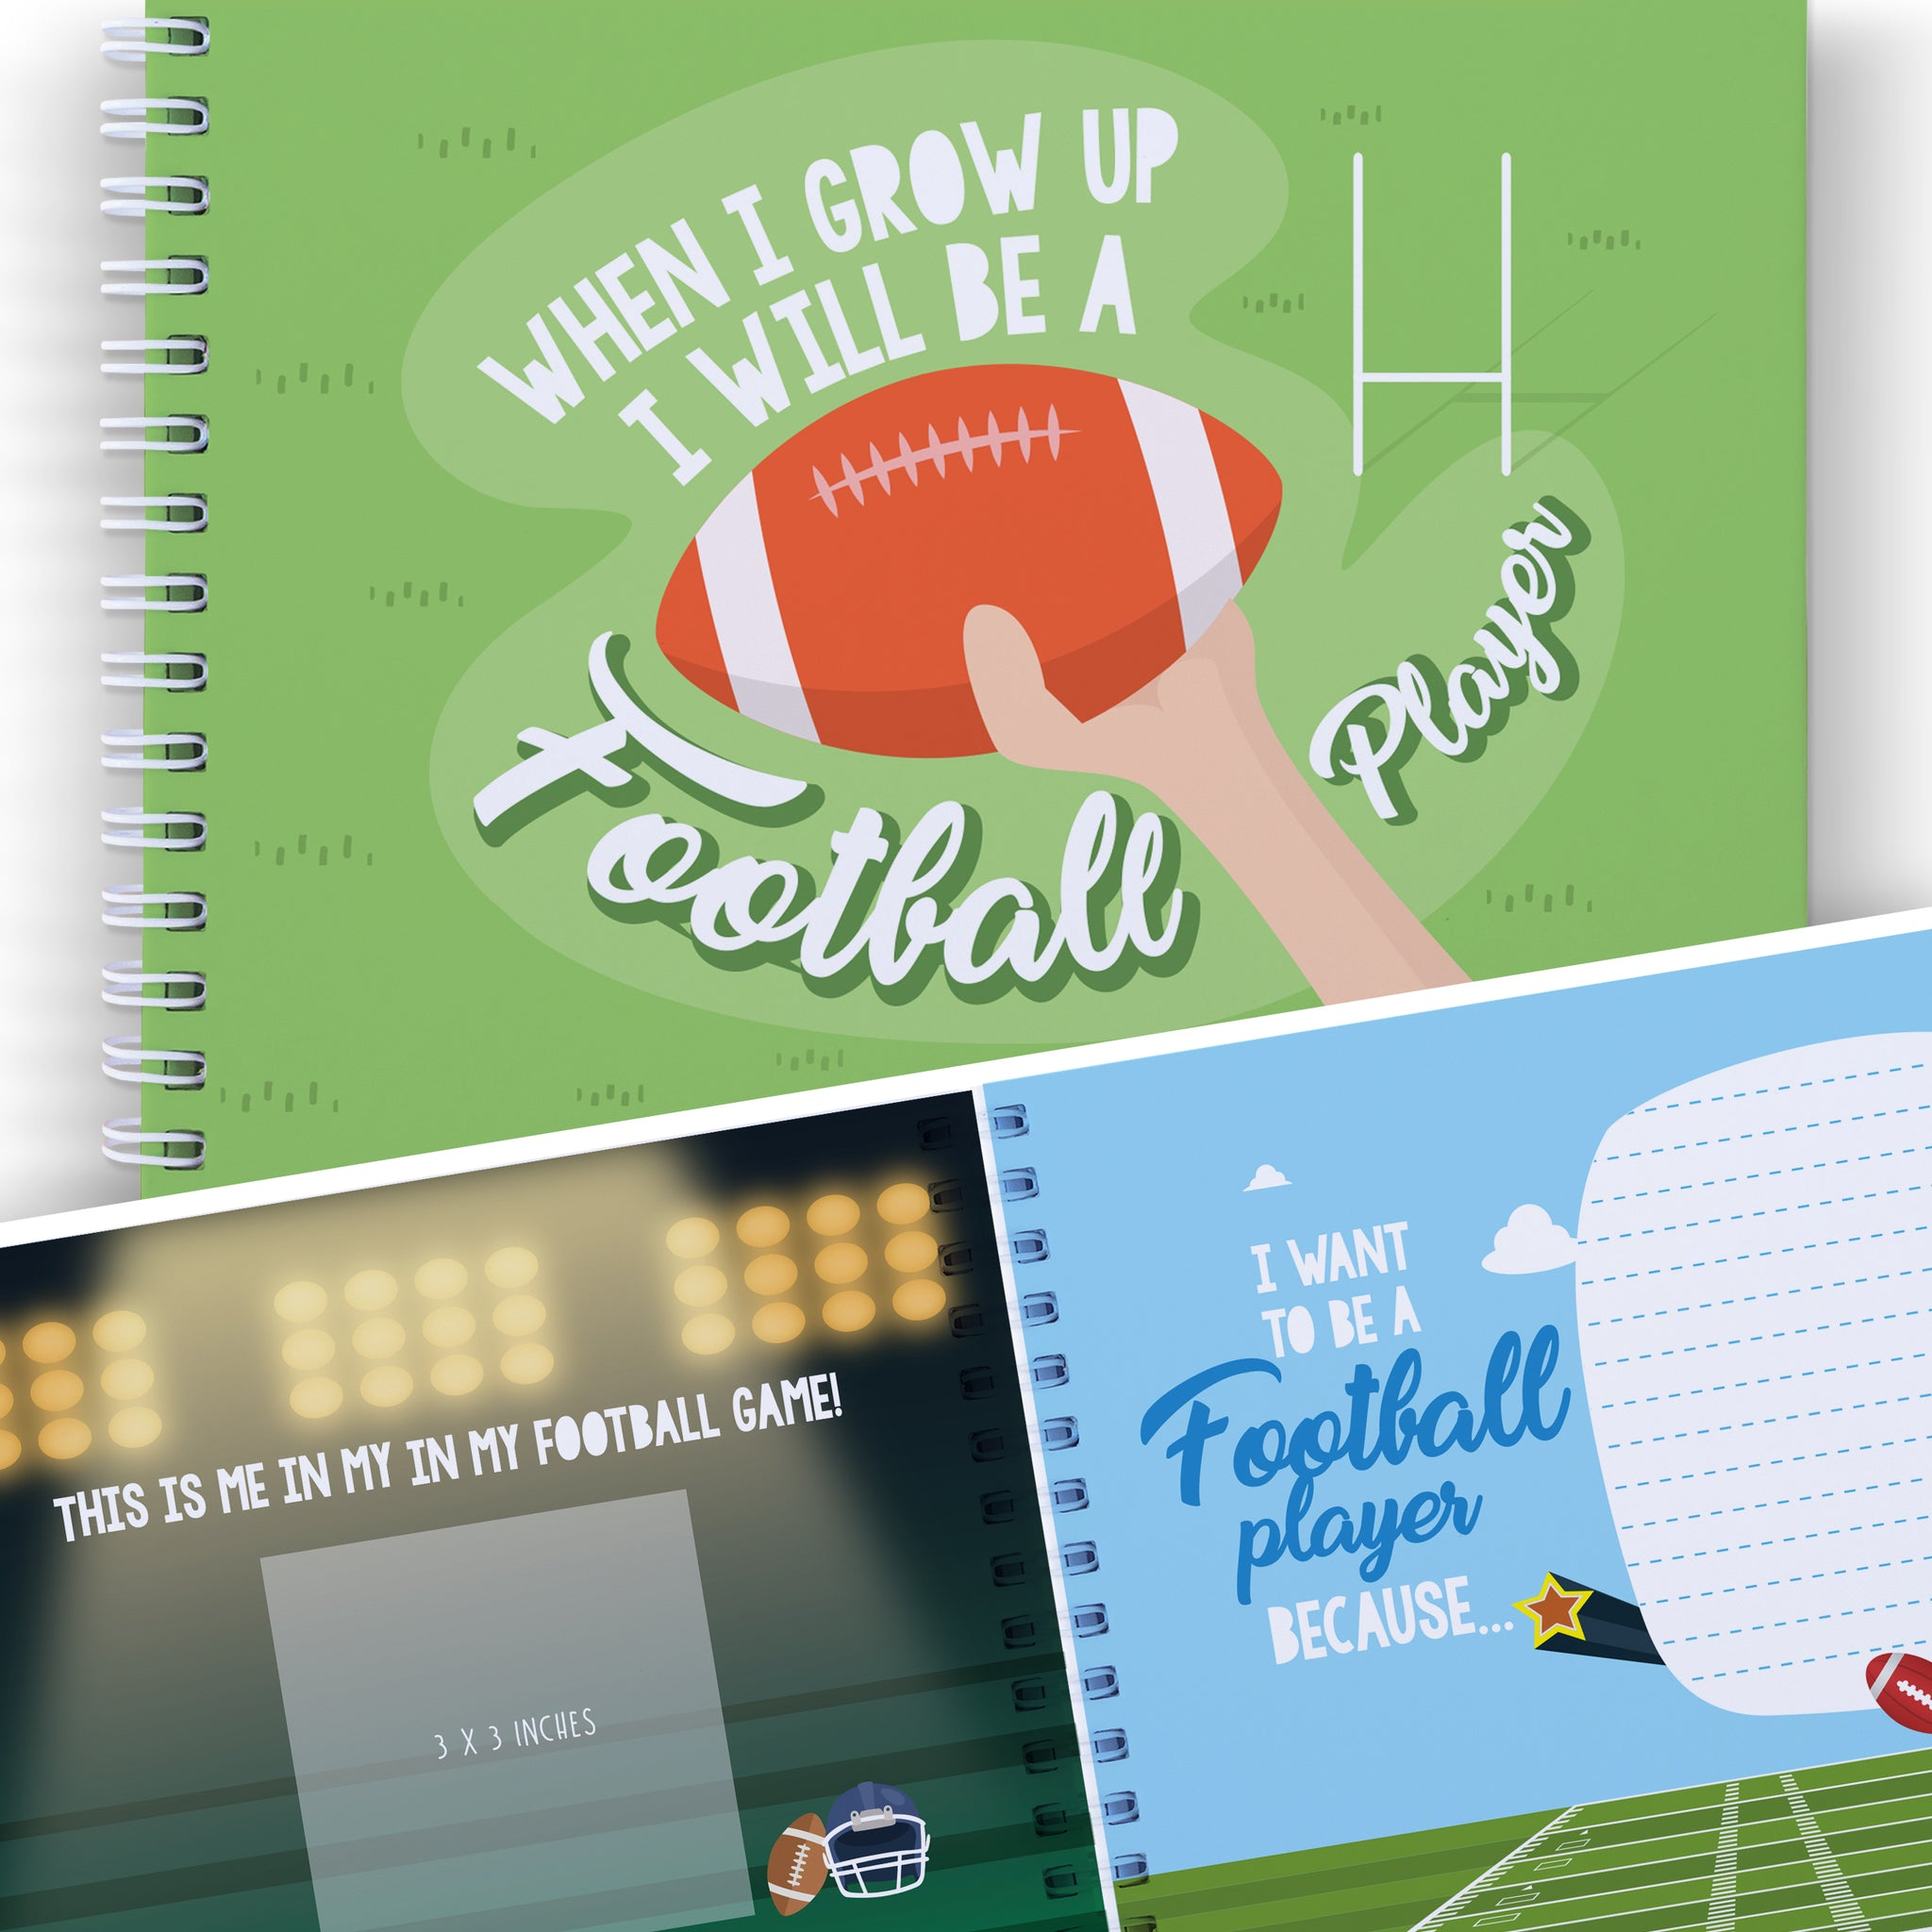 WHEN I GROW UP I WILL BE A FOOTBALL PLAYER: Let's Write The Future With This Memory Book of Dreams.